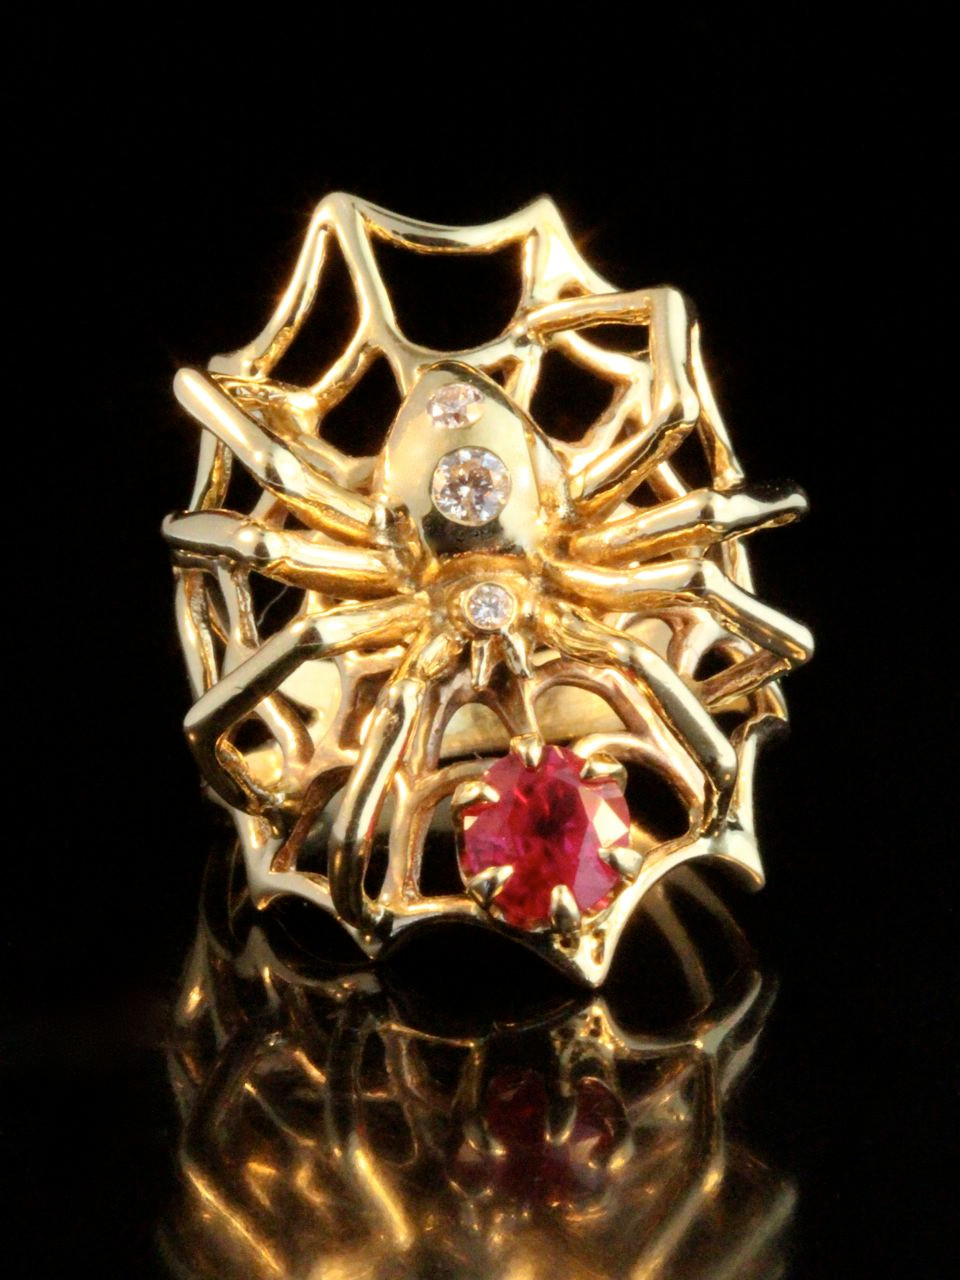 Spider Ring With Rubies Jewelry